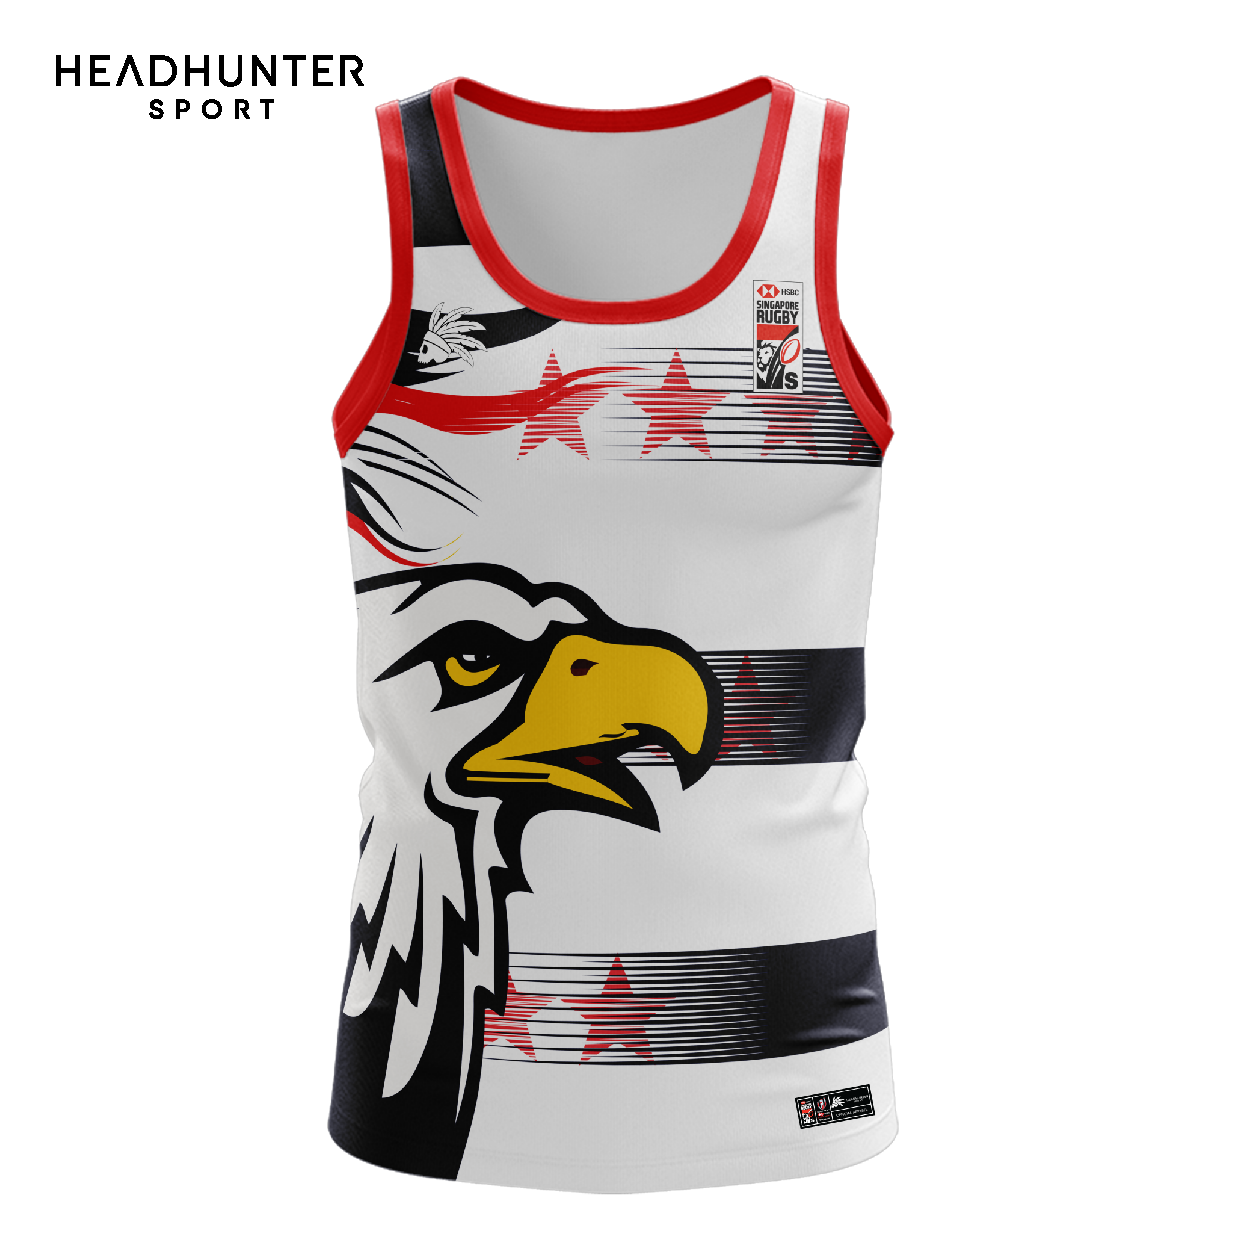 HSBC RUGBY 7S SERIES SINGAPORE 2019 MERCHANDISE USA SINGLET